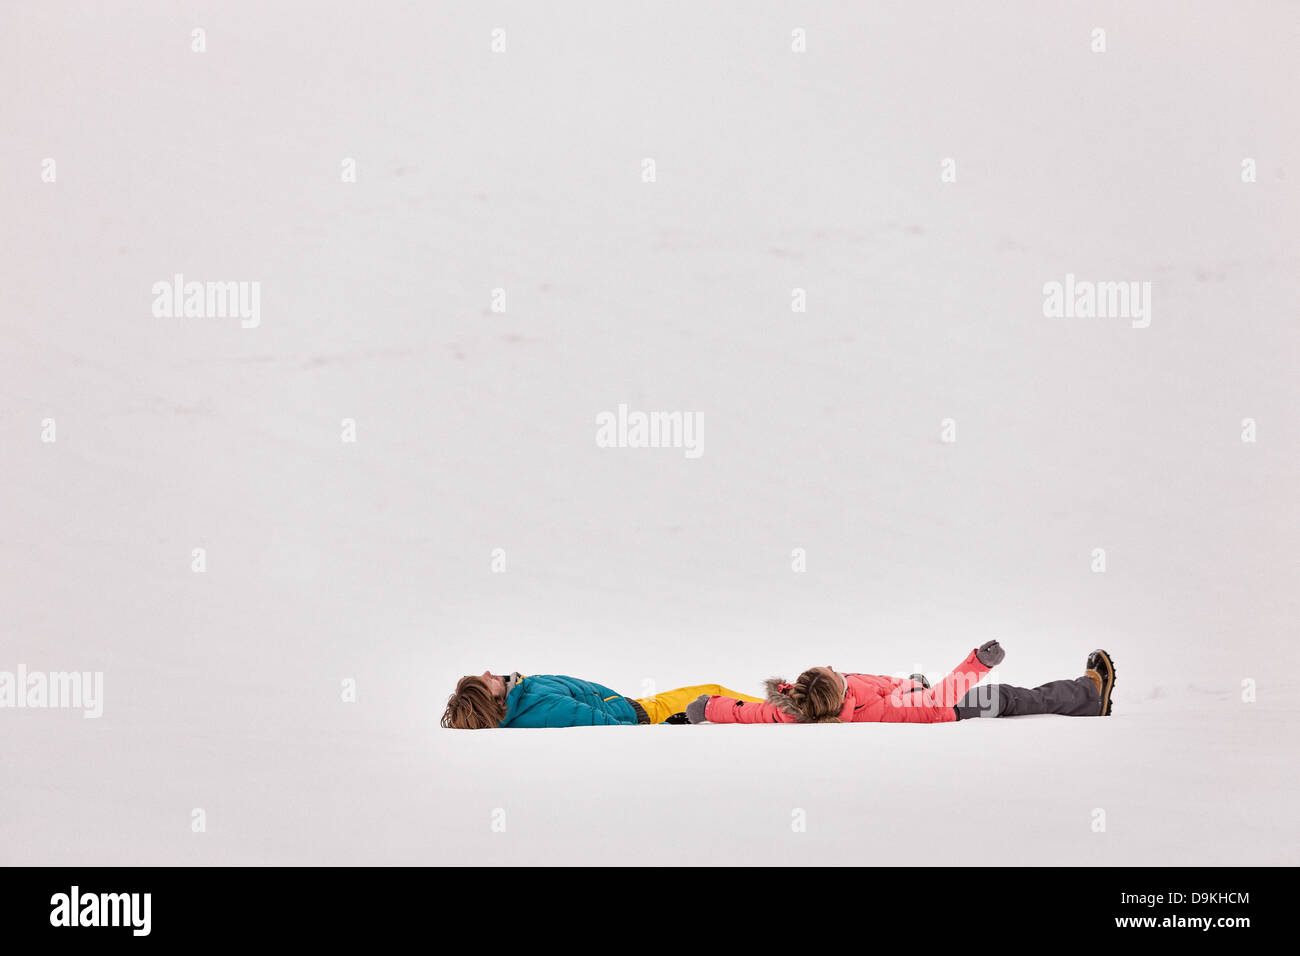 Couple lying on backs in snow - Stock Image